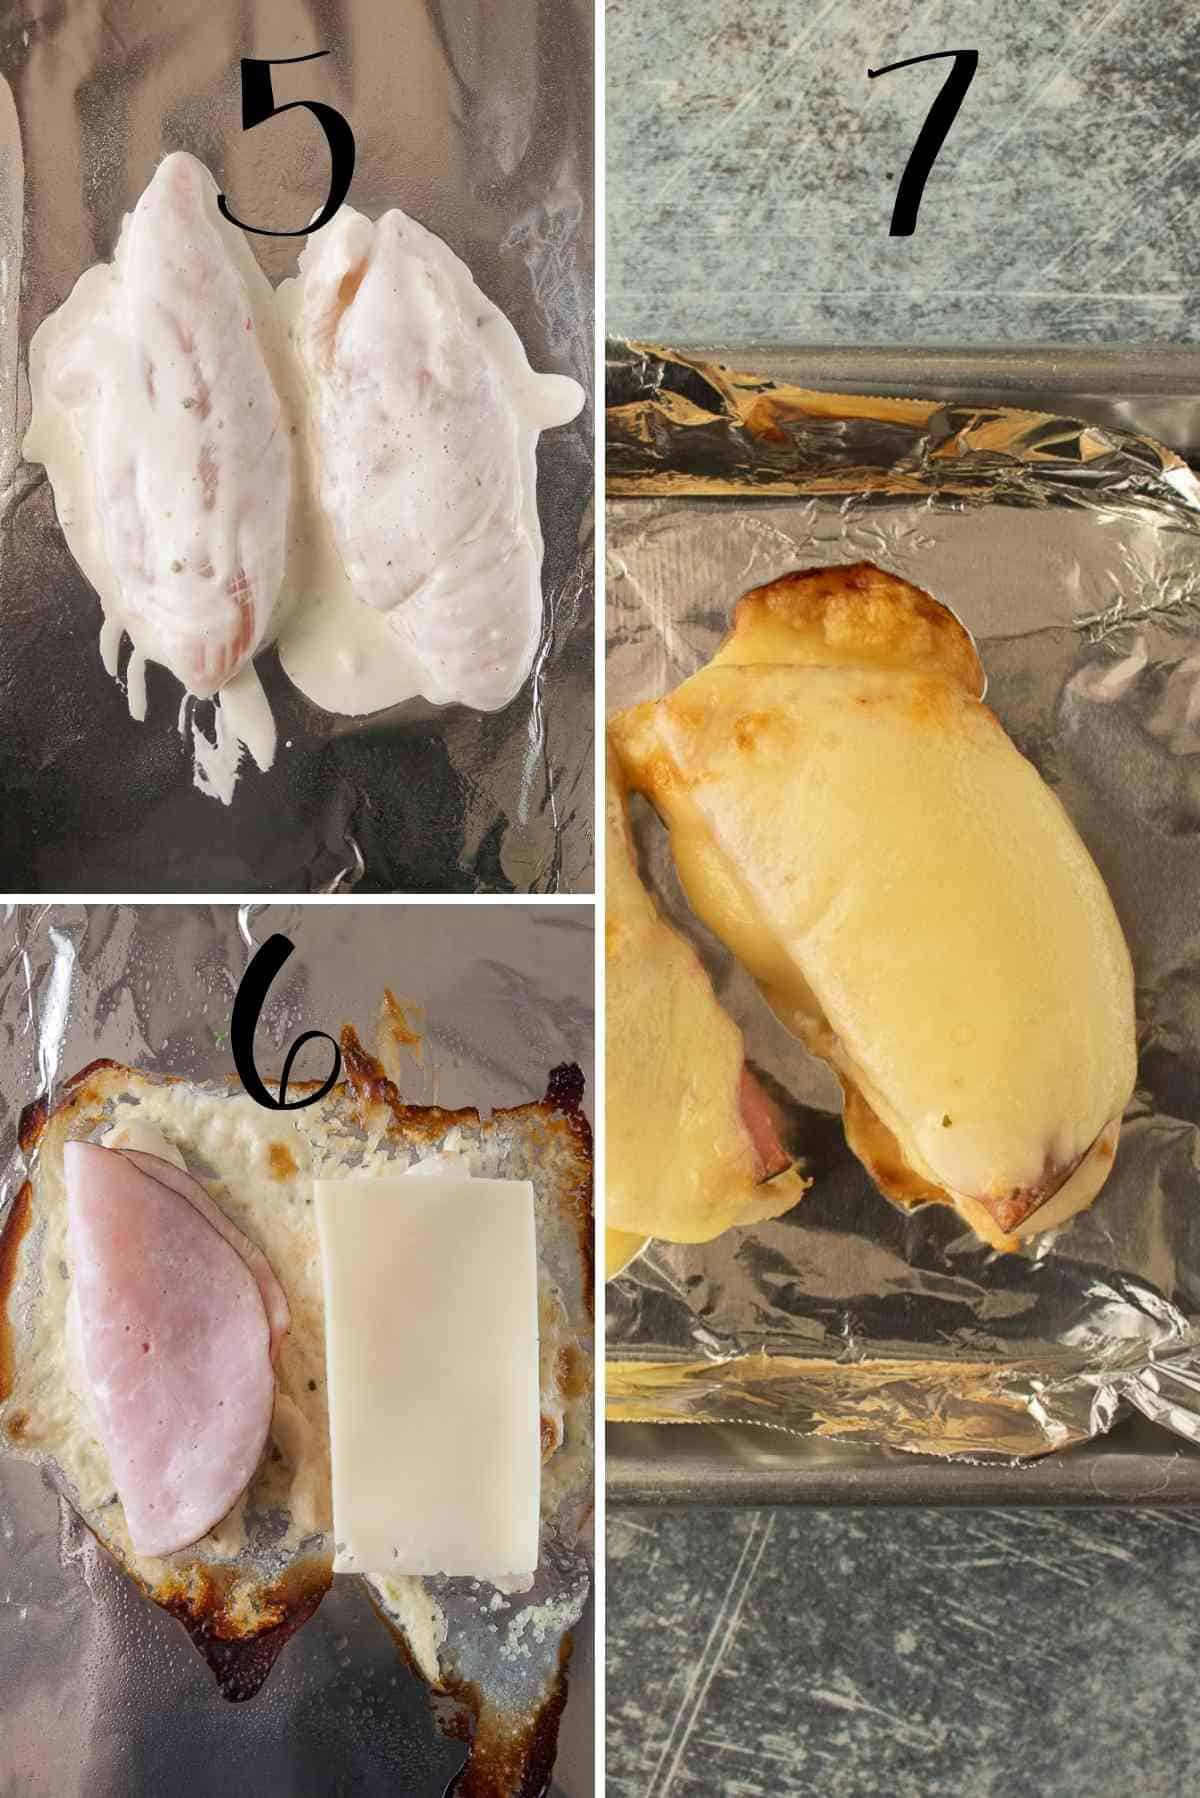 Marinated chicken laid out on baking sheet, baked, topped with ham and cheese, then broiled.